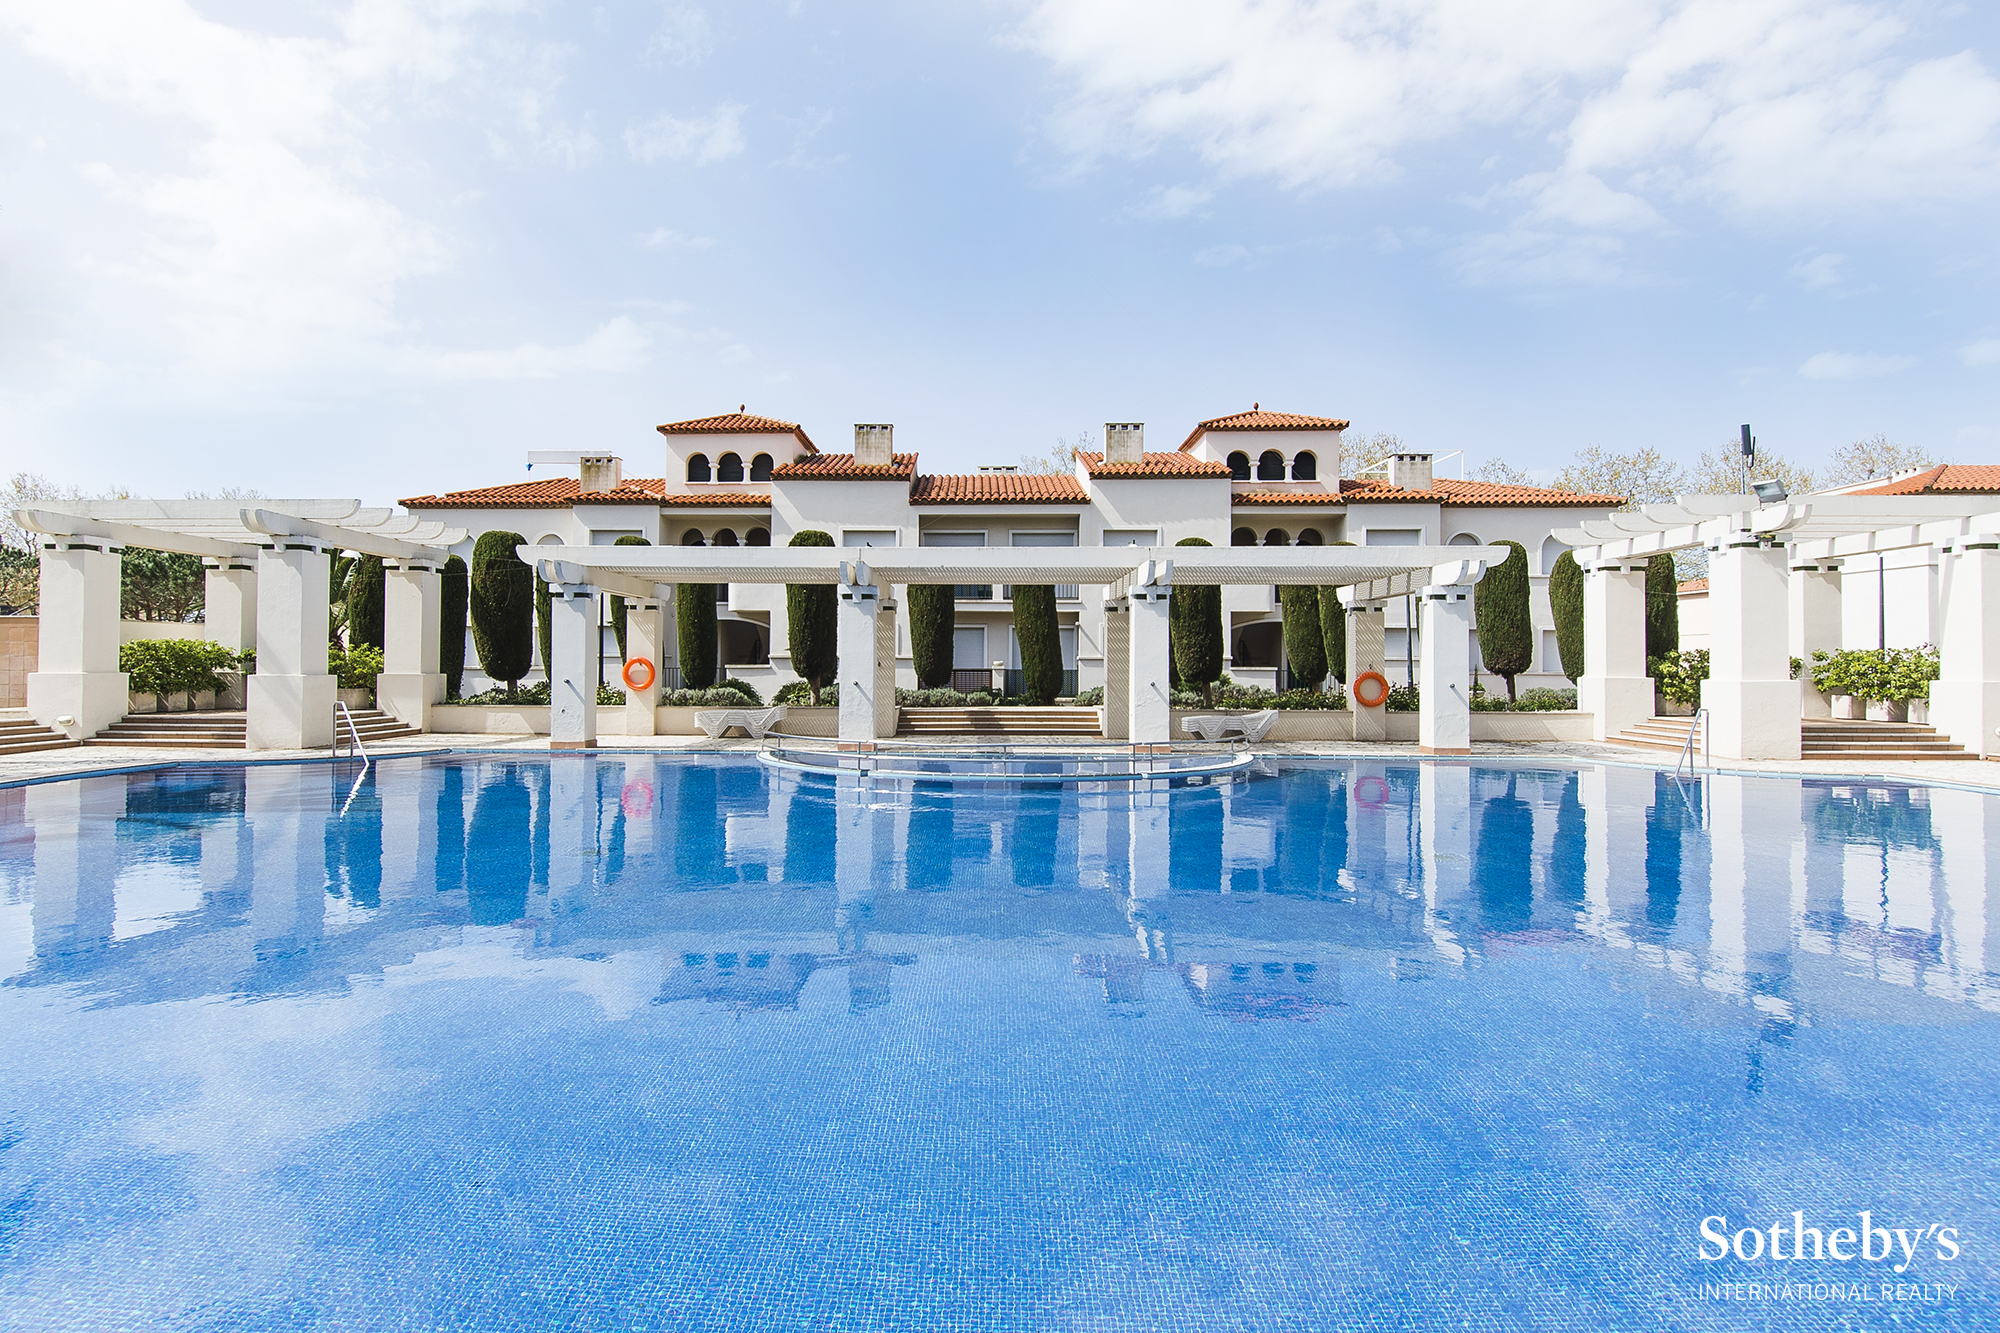 Apartment for Sale at S'Agaró penthouse 100 metres from the beach S'Agaro, Costa Brava 17248 Spain